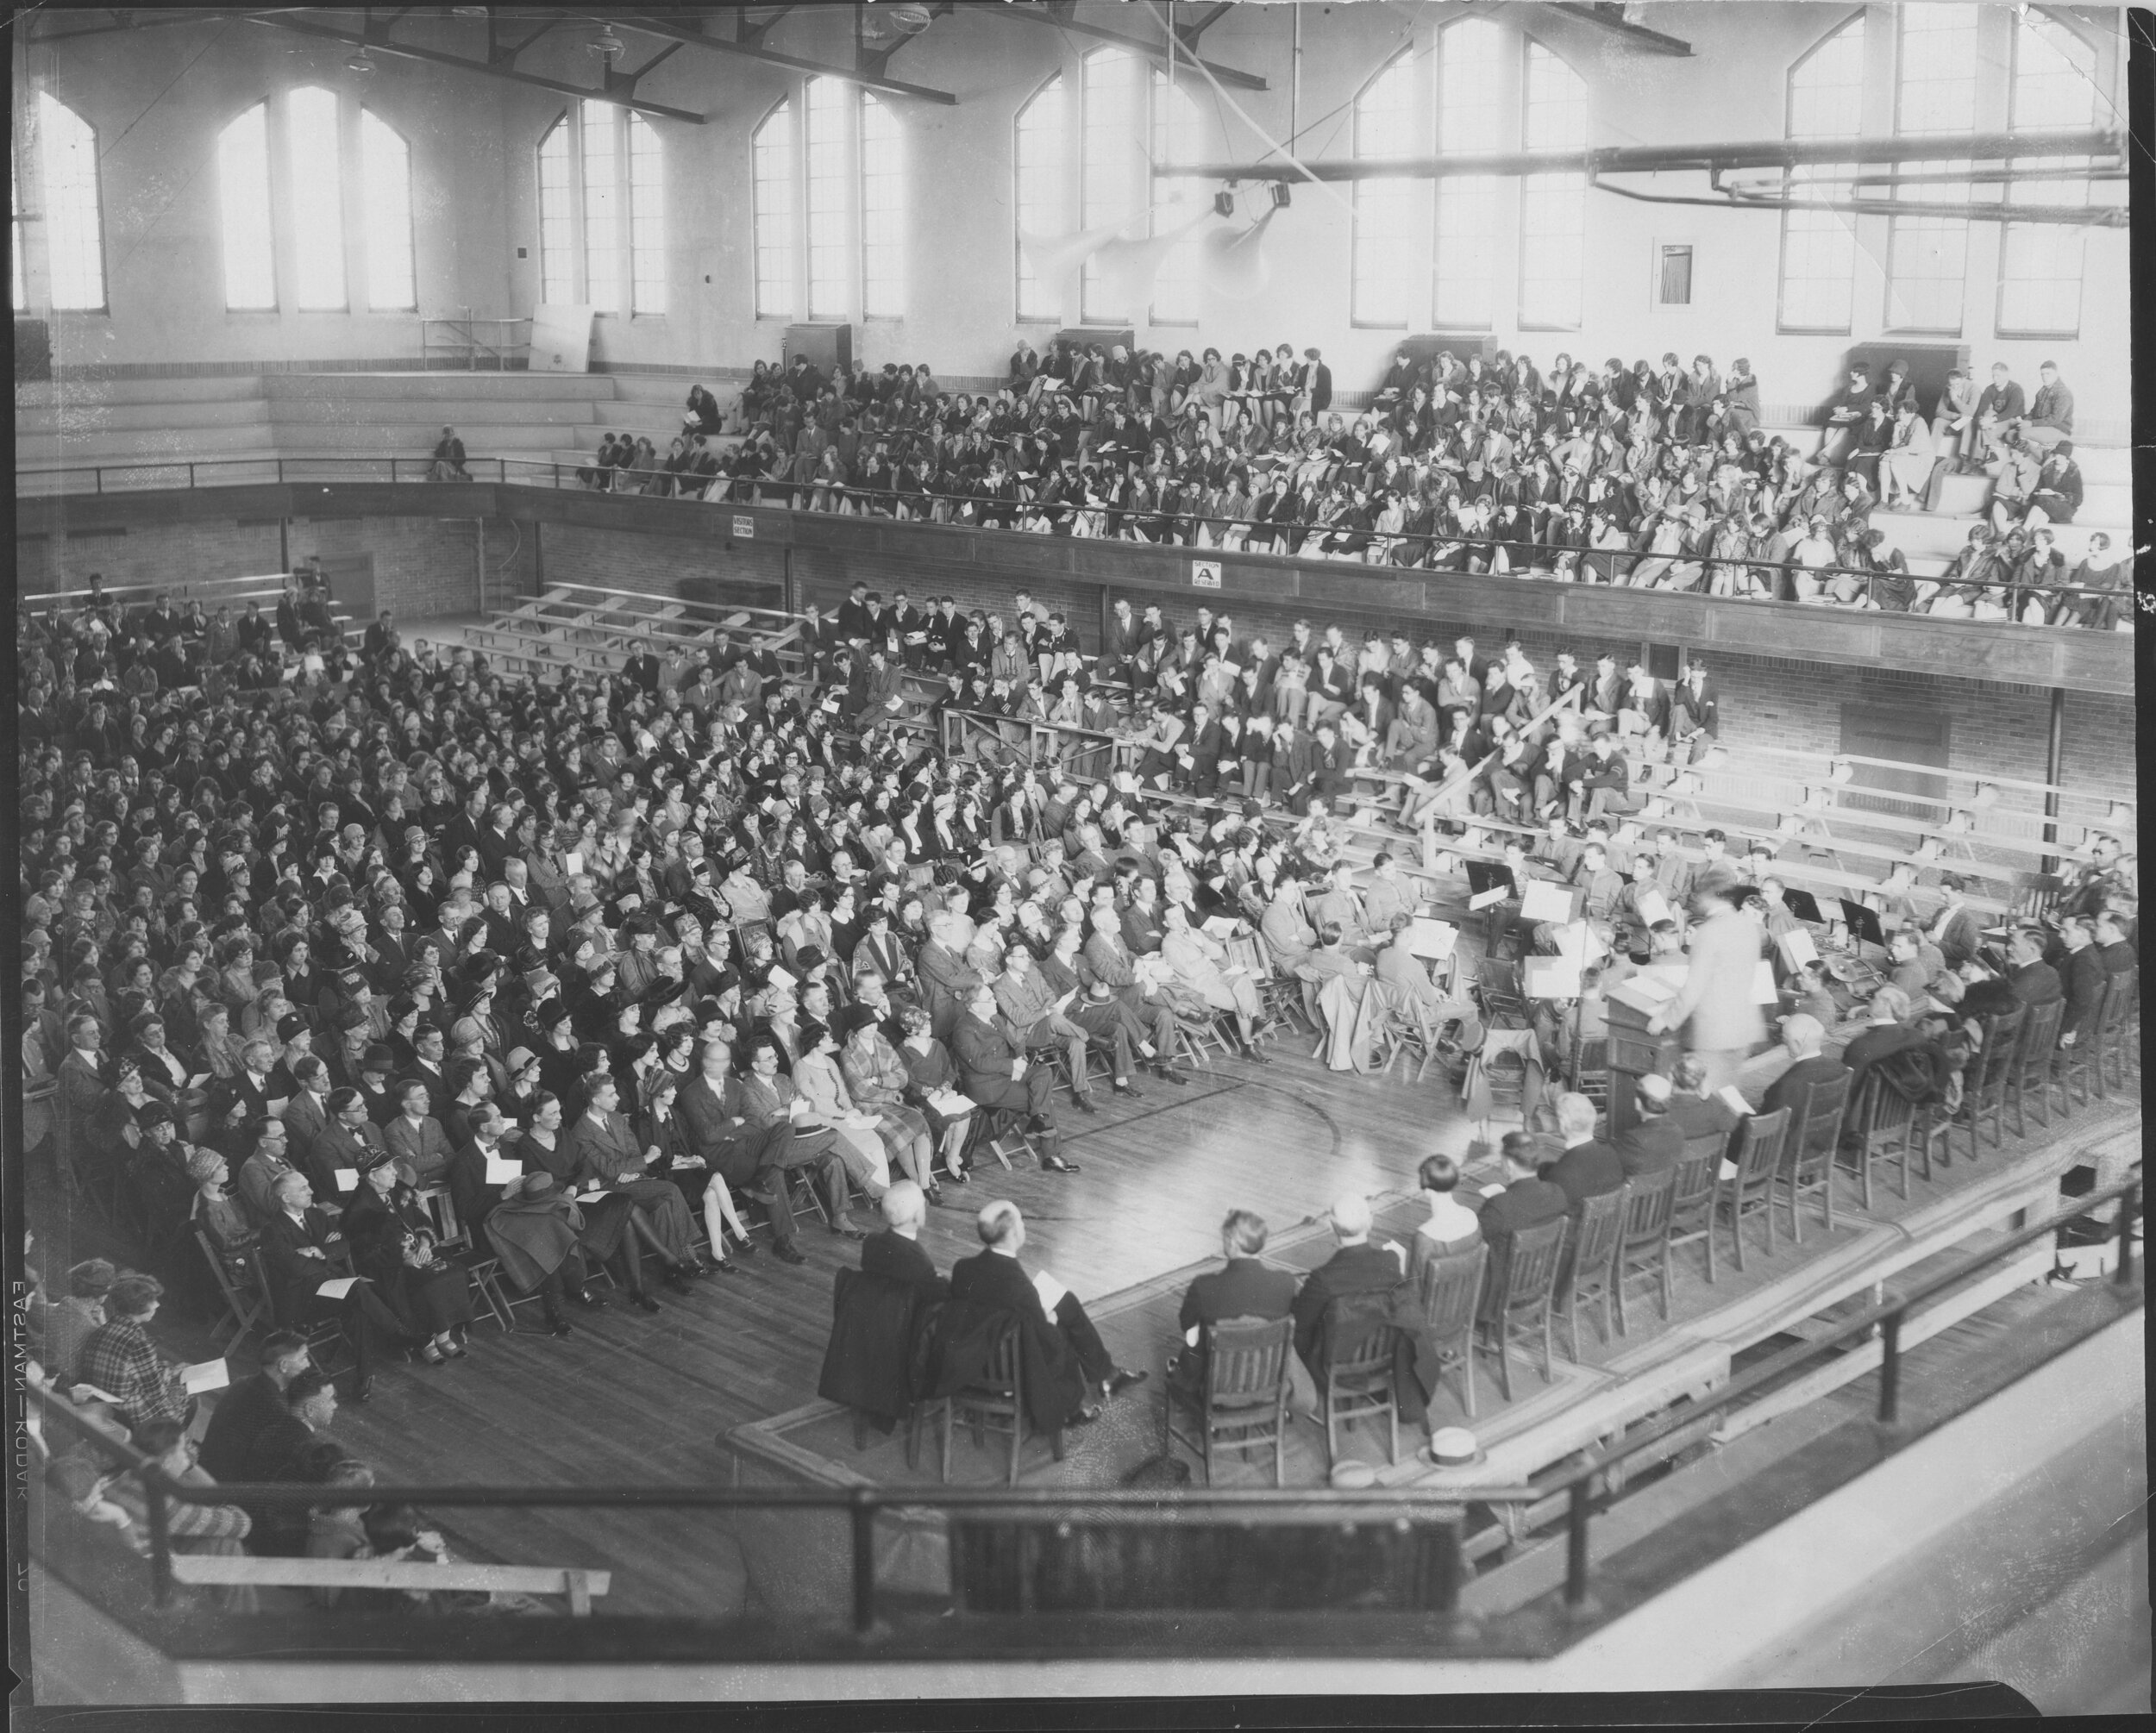 Gunter Hall Gymnasium, UNC - Opened in 1928, the gymnasium hosted many performances from touring musical acts and served as the home to the Greeley Philharmonic Orchestra from 1947 until 1971. (Image use courtesy of Special Collections, Michener Library, University of Northern Colorado.)